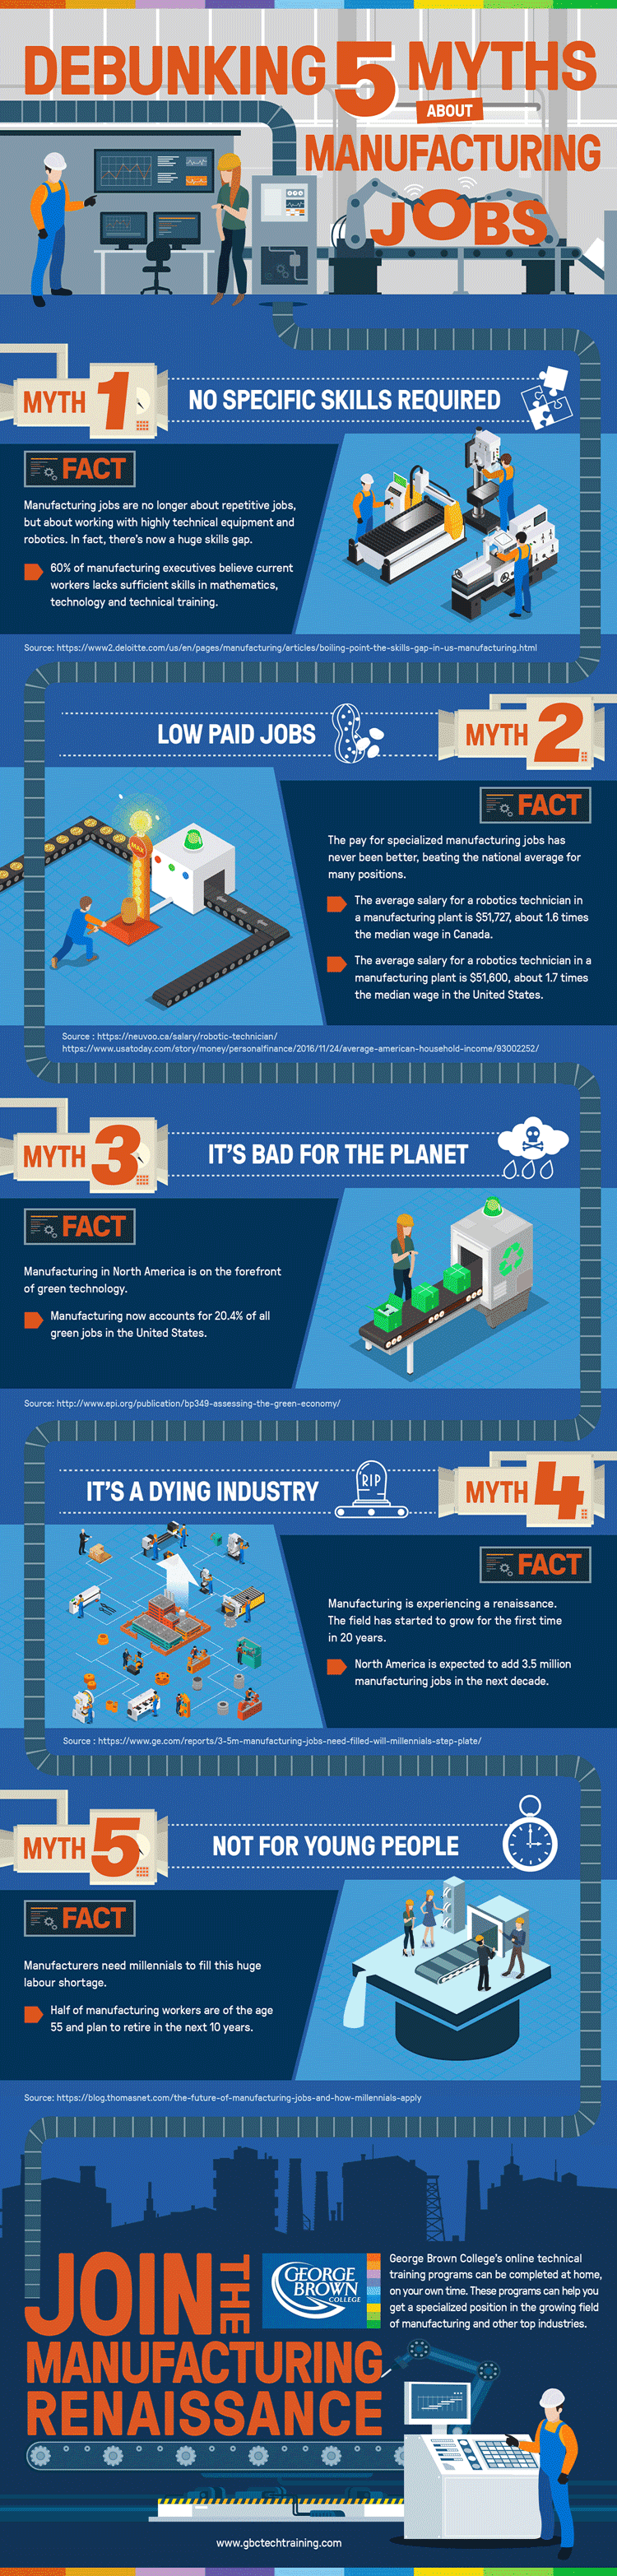 5 Myths of manufacturing jobs debunking #infographic